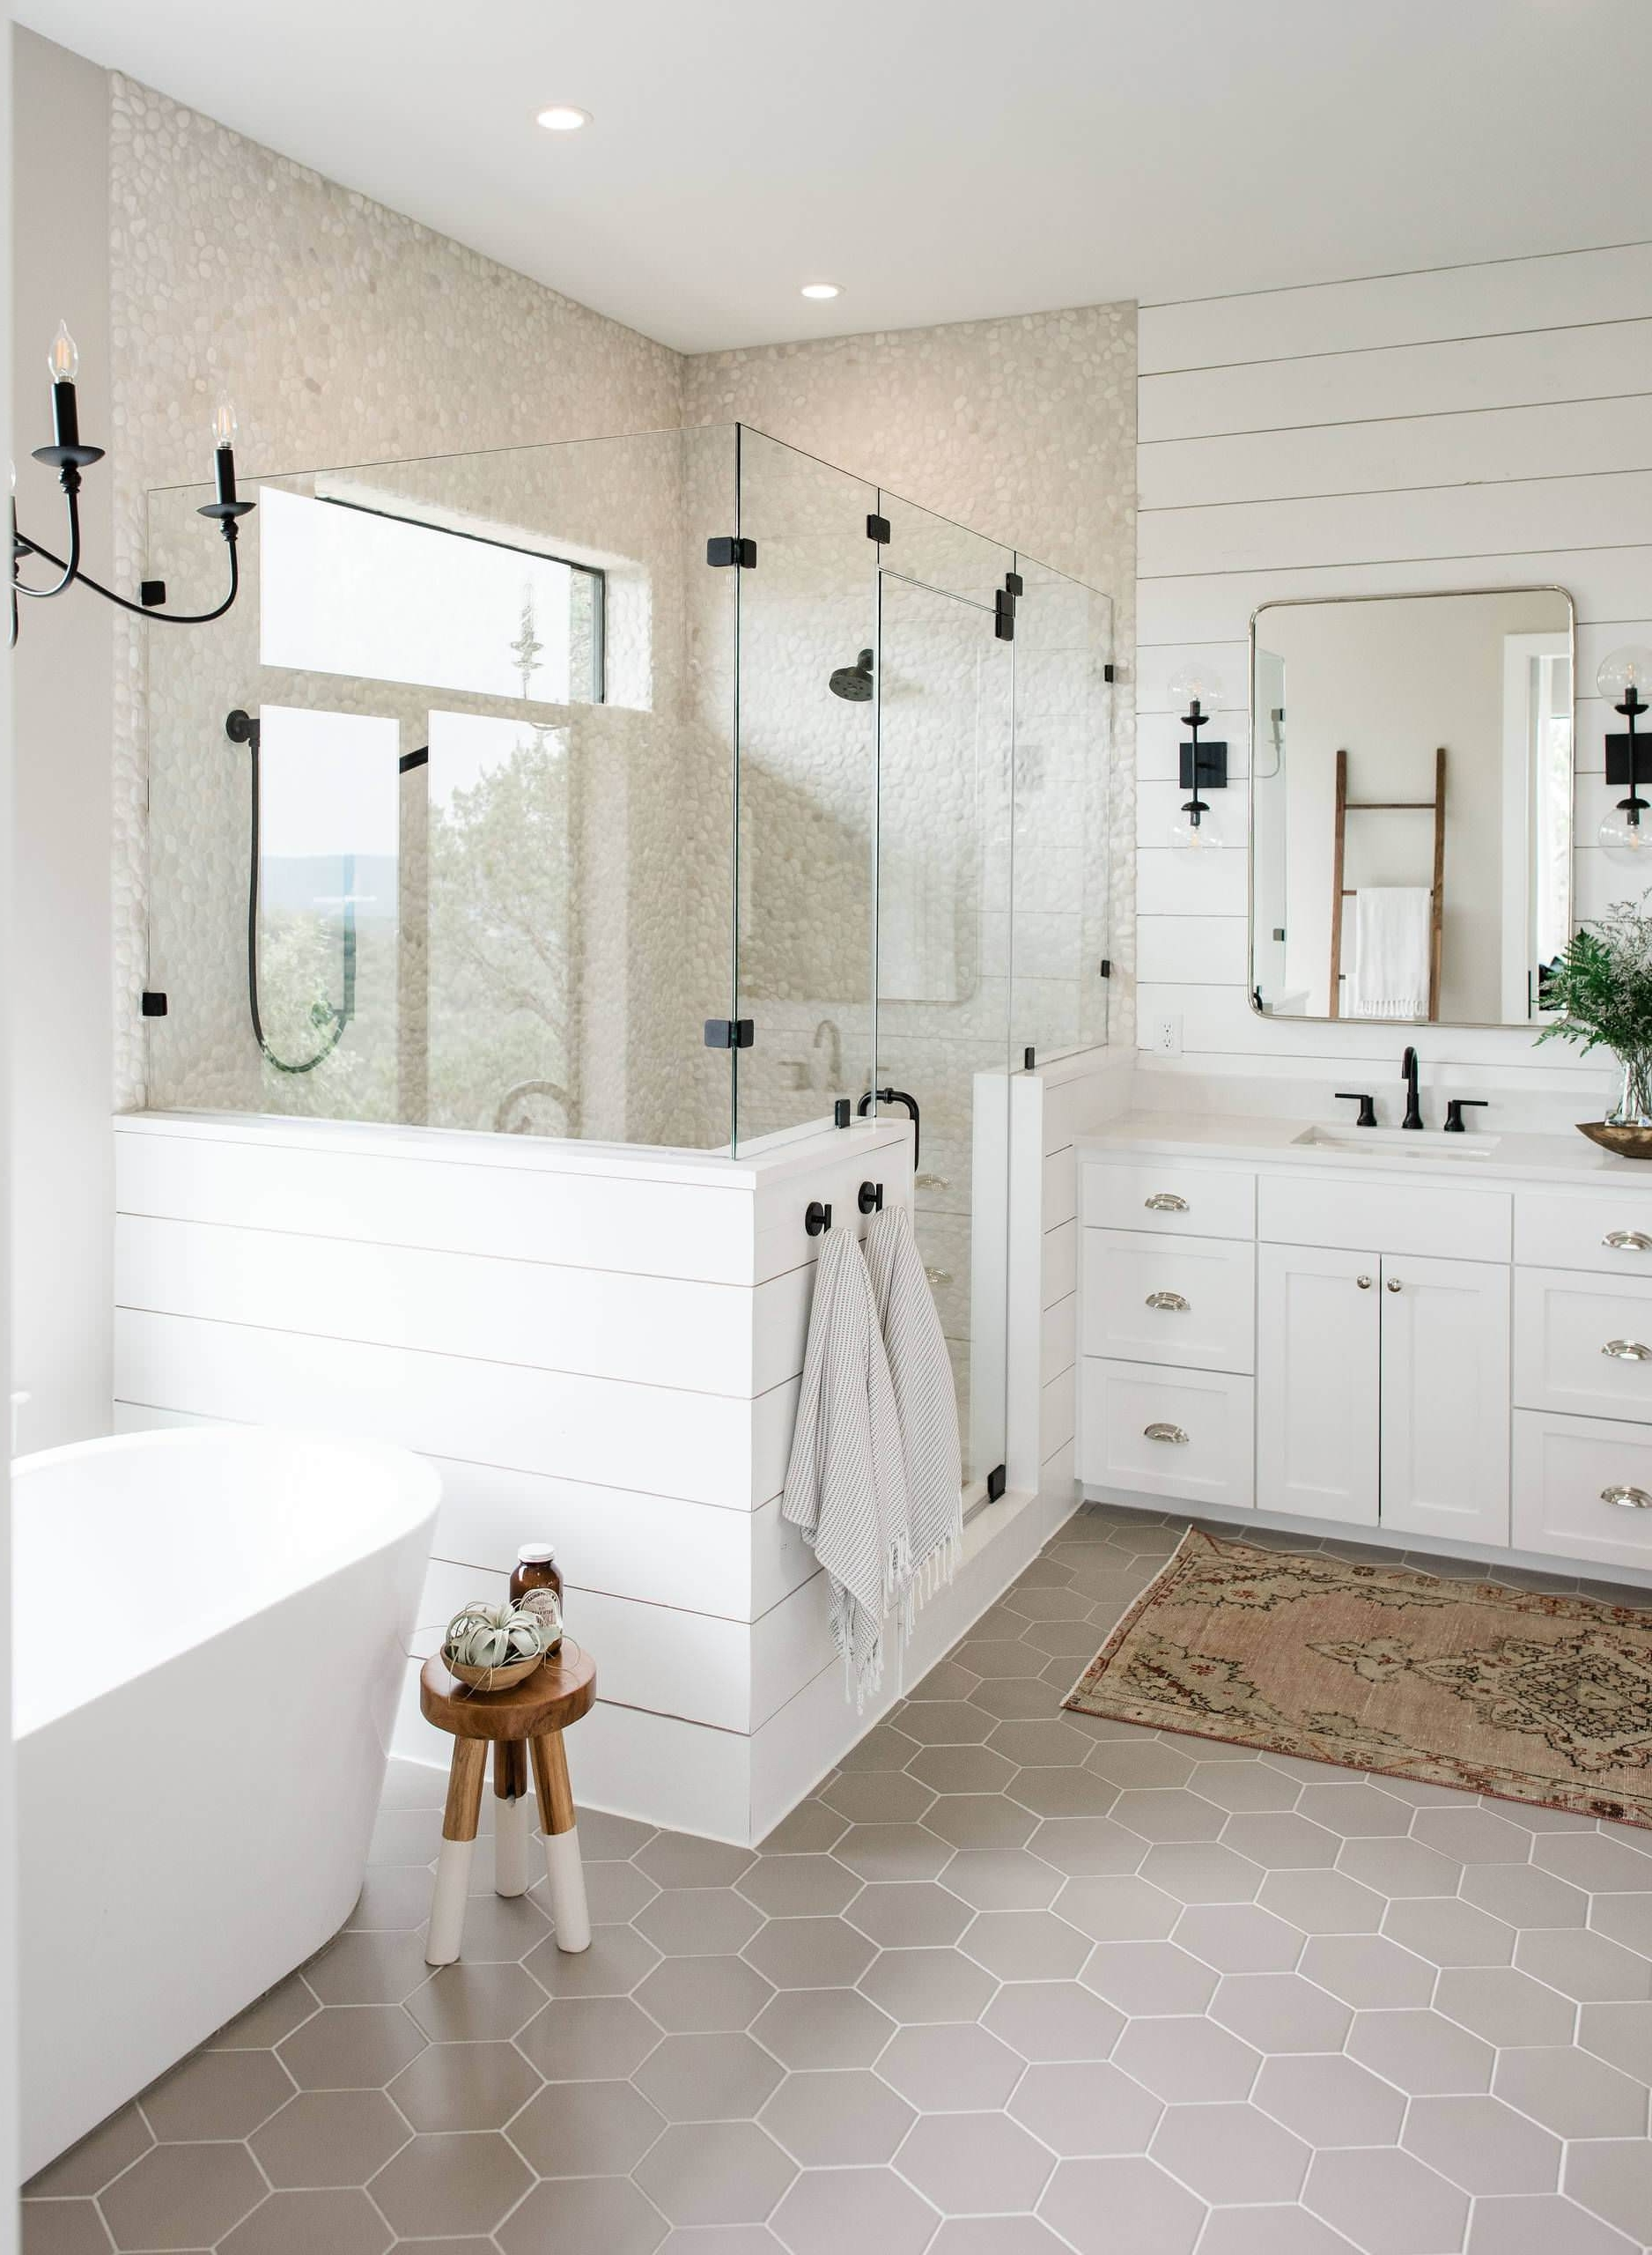 75 Beautiful Shiplap Wall Bathroom With White Cabinets 40+ Chapel Hill Design Bathroom Accessories Inspirations